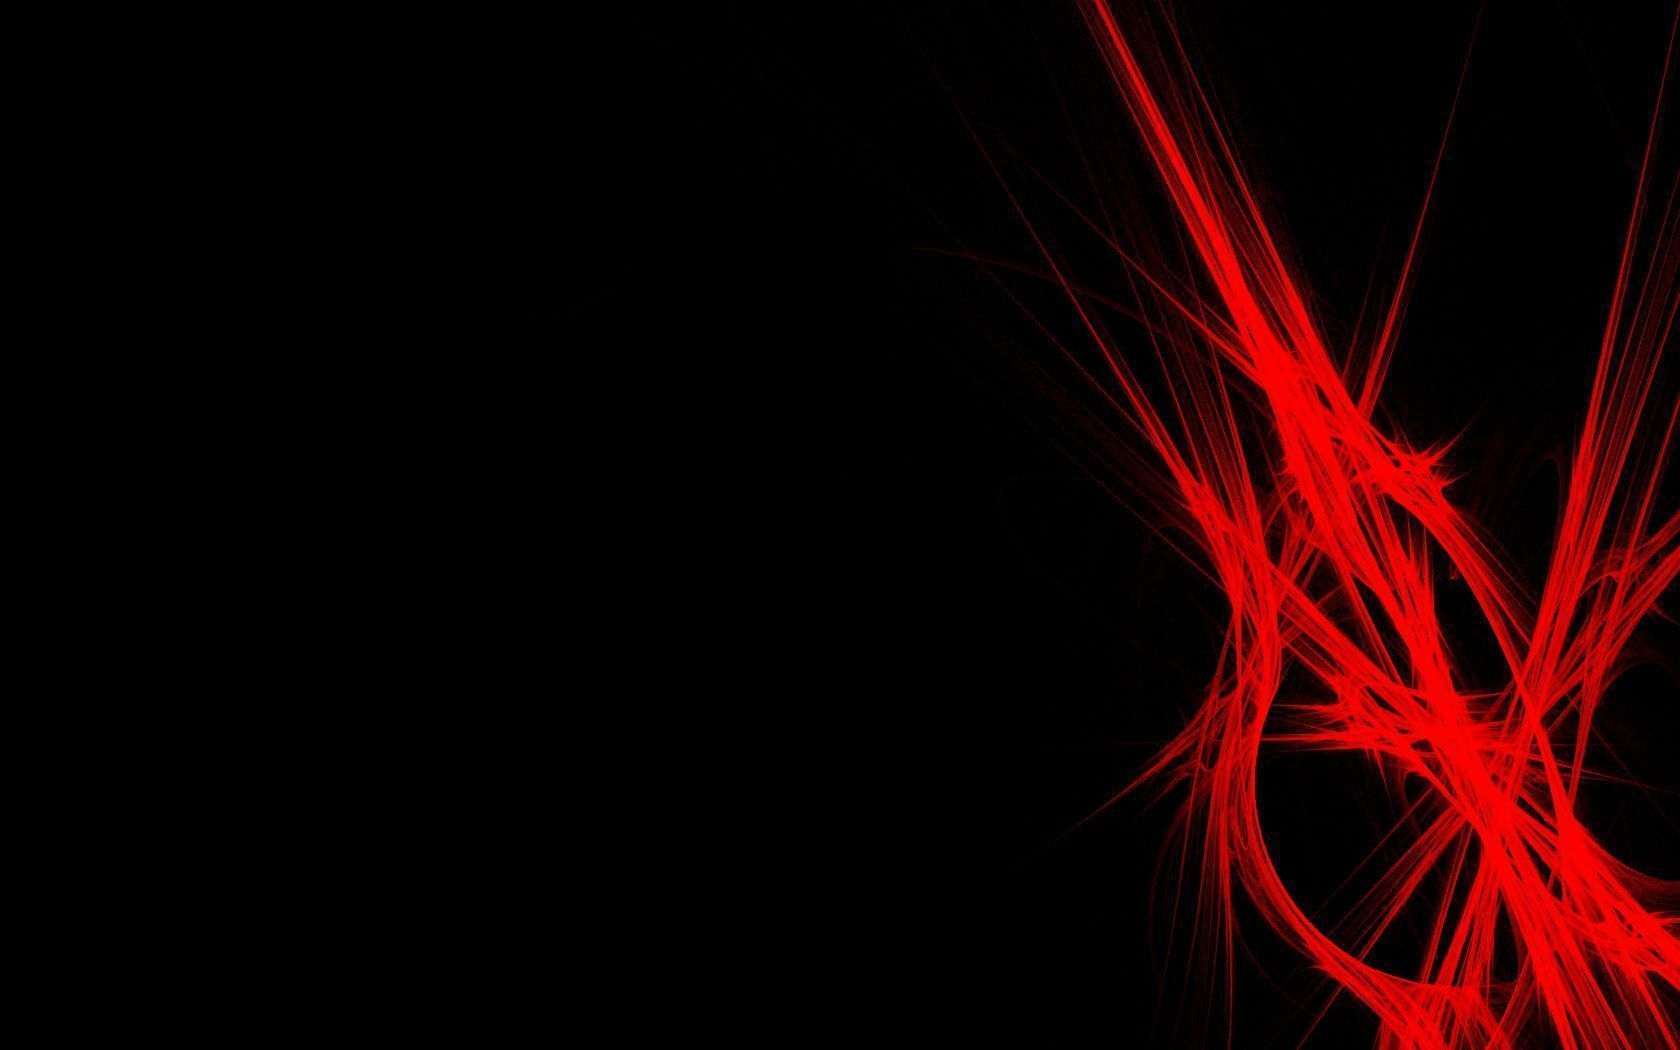 Black And Red Abstract Wallpaper 24 - [1680x1050]